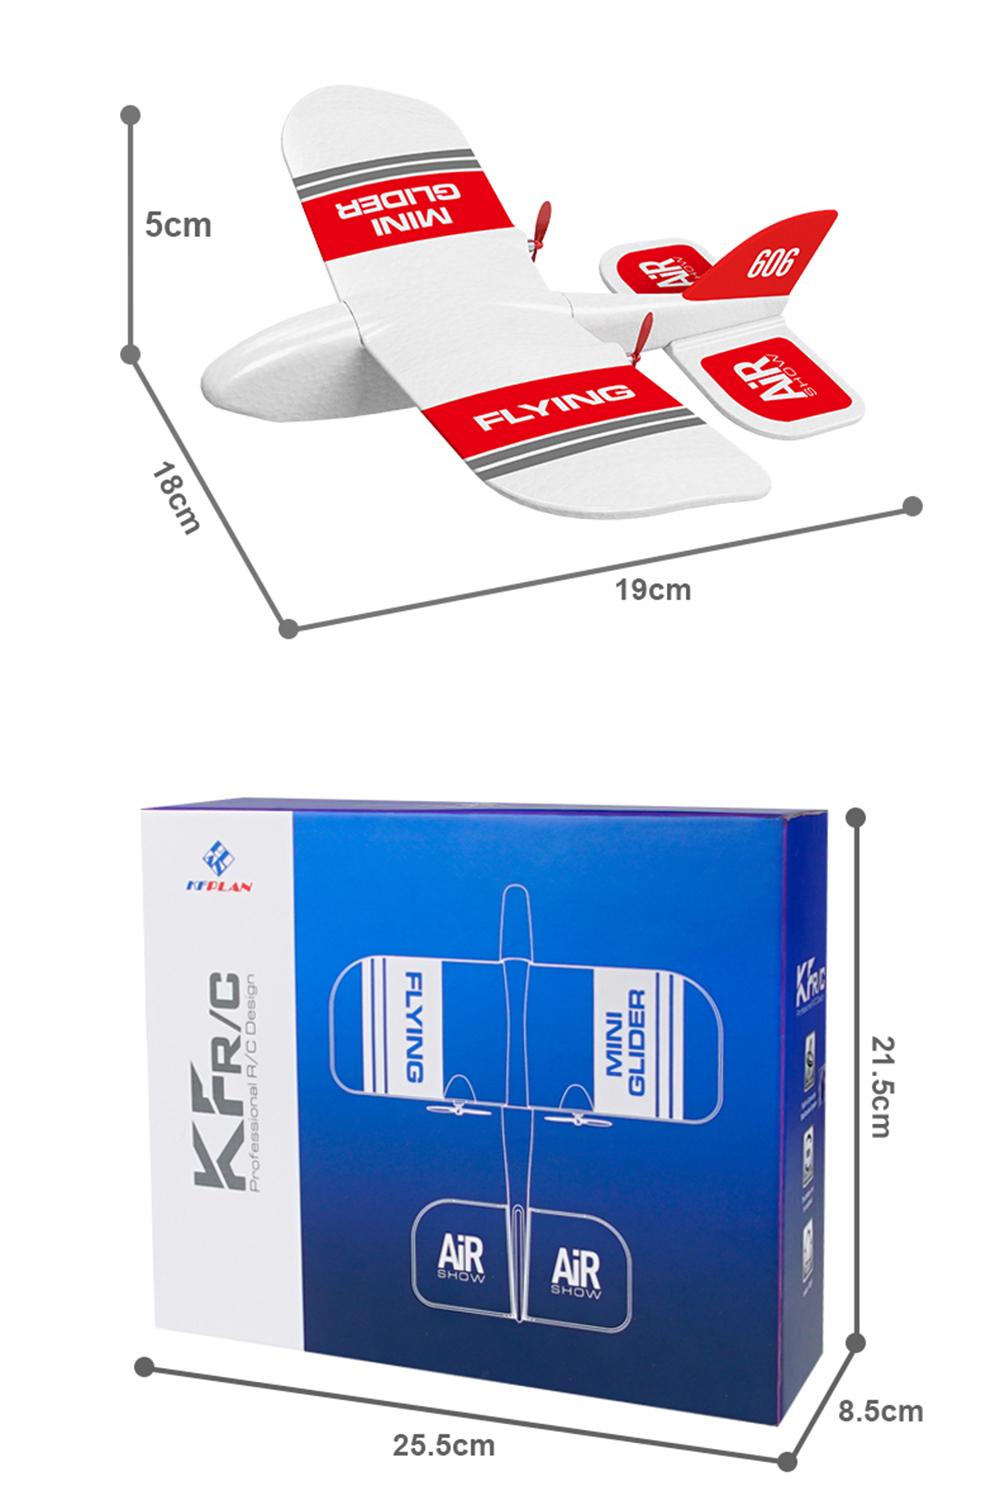 medium resolution of kfplan kf606 2 4ghz 2ch epp mini indoor rc glider airplane built in gyro rtf